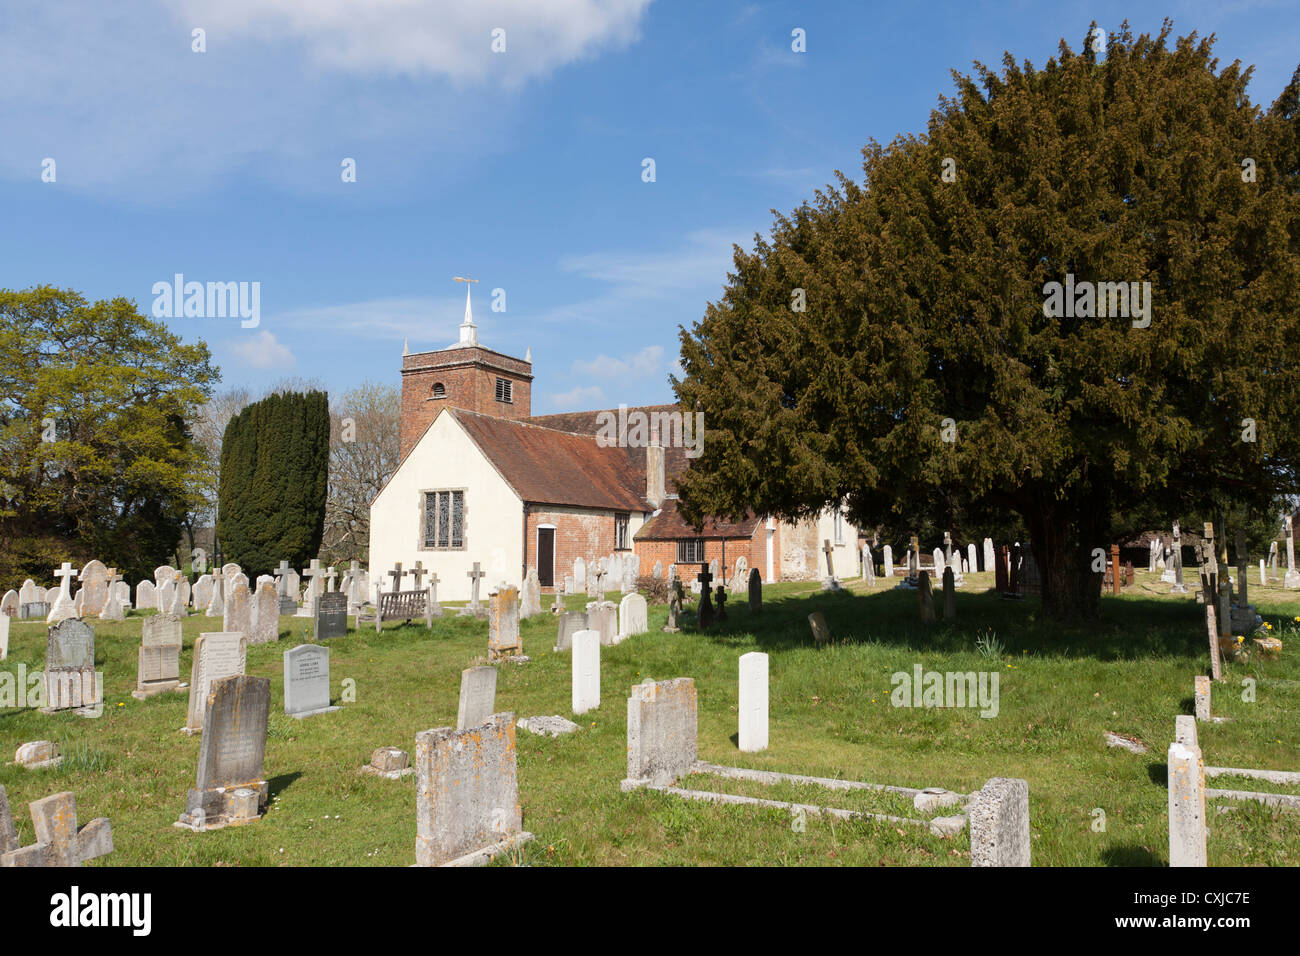 Minstead Church and graveyard, Hampshire, UK - Stock Image